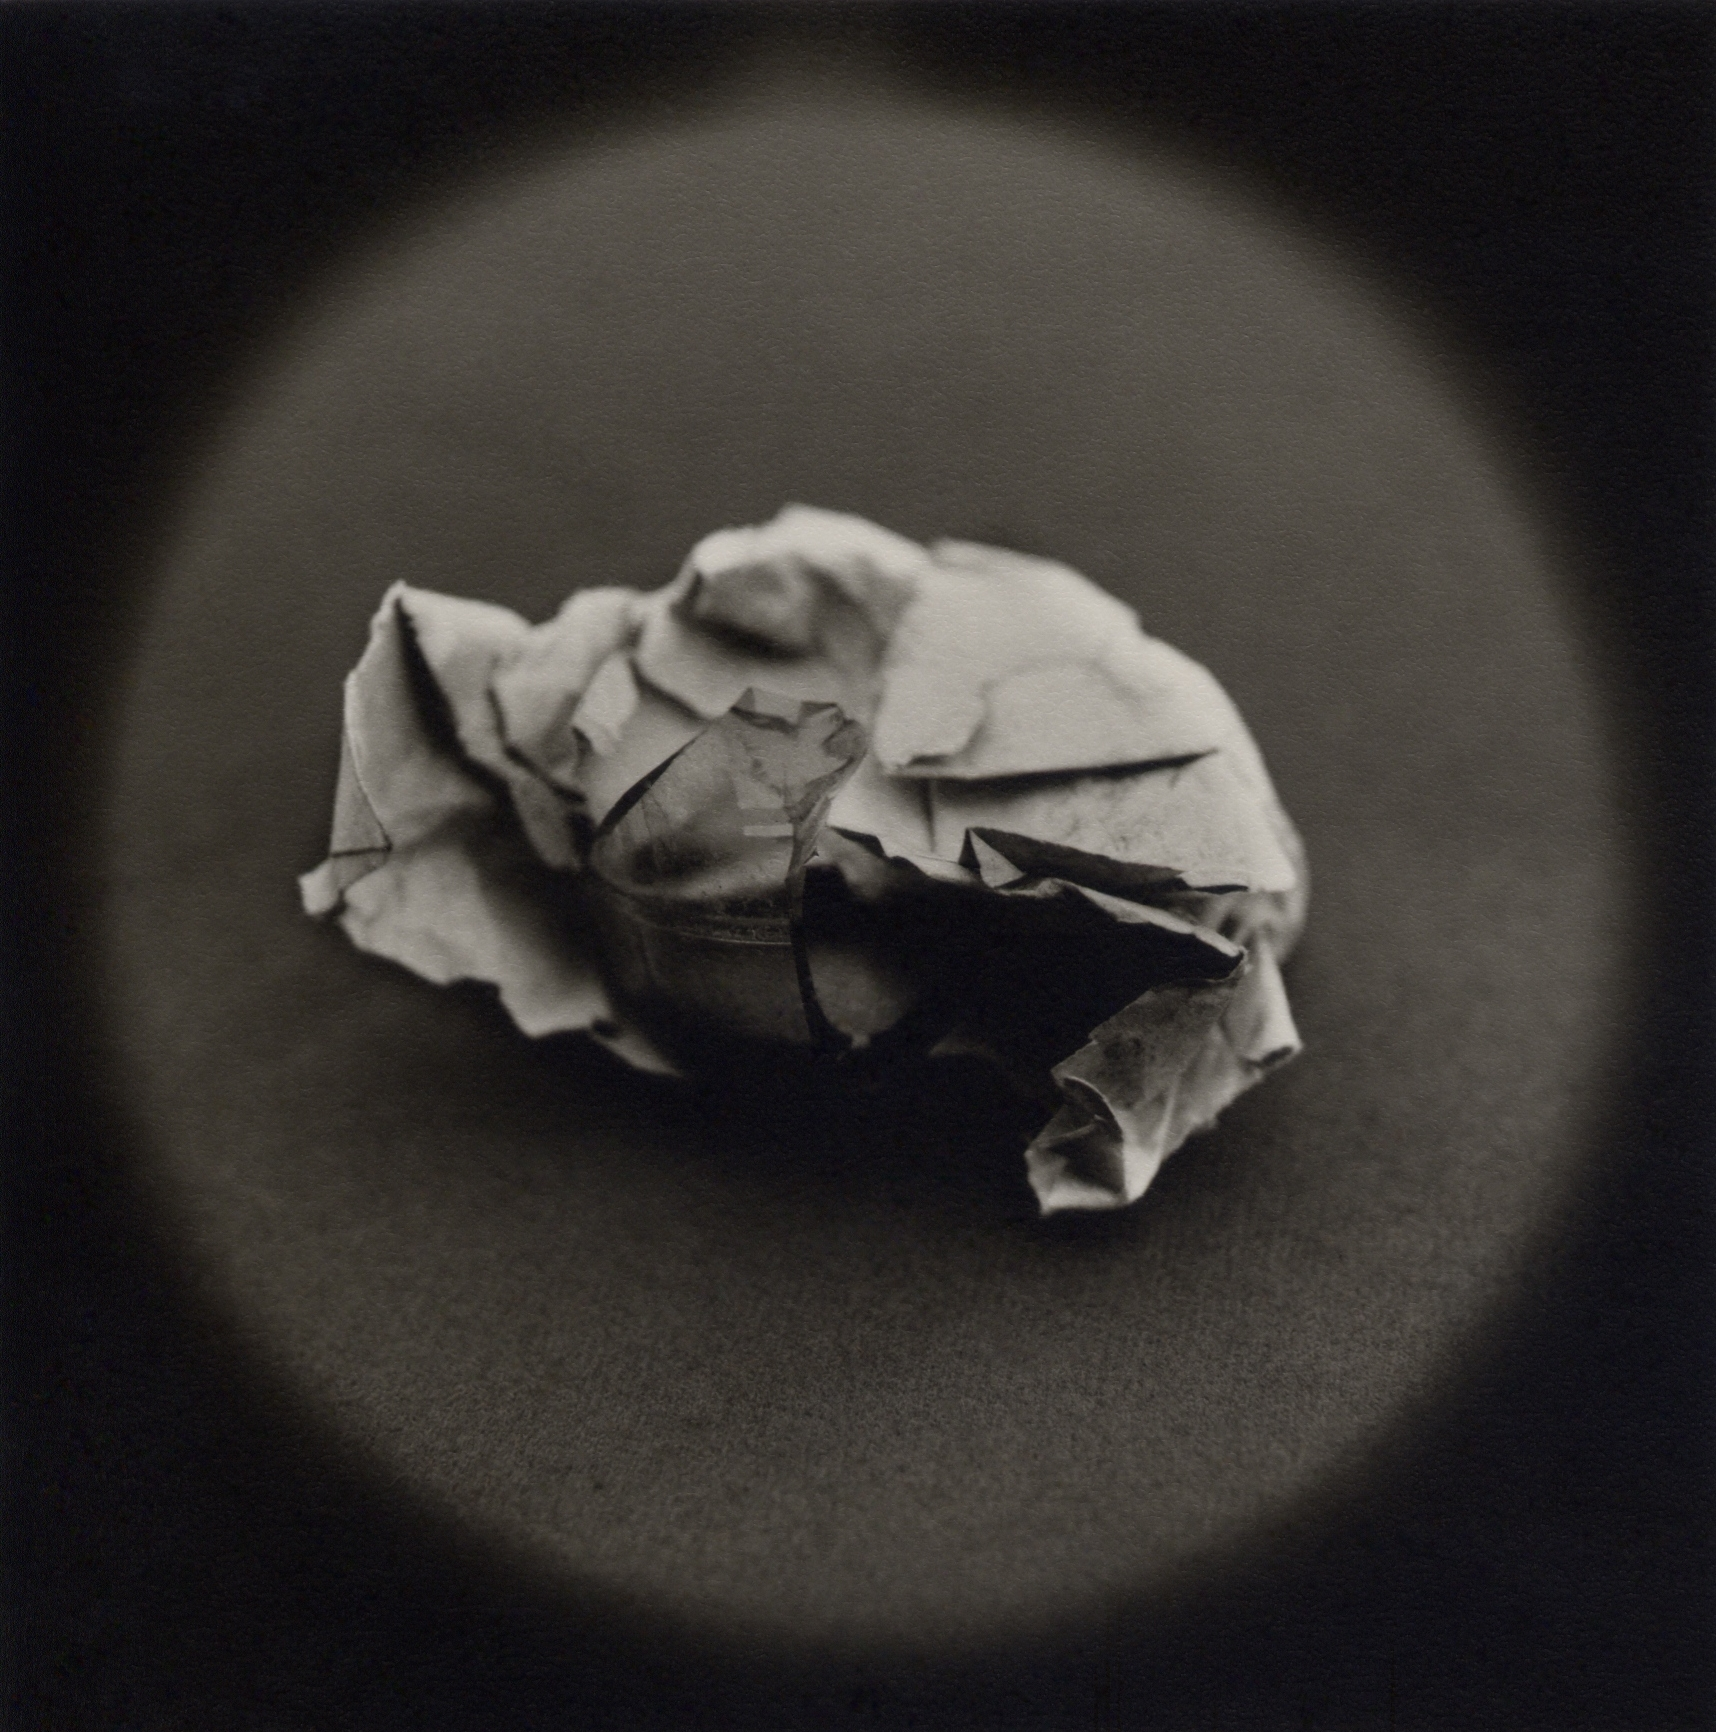 The Lost Steps (Rudimentary weapon made from broken bottle and paper)  Toned gelatin silver print. 16 x 16 in.